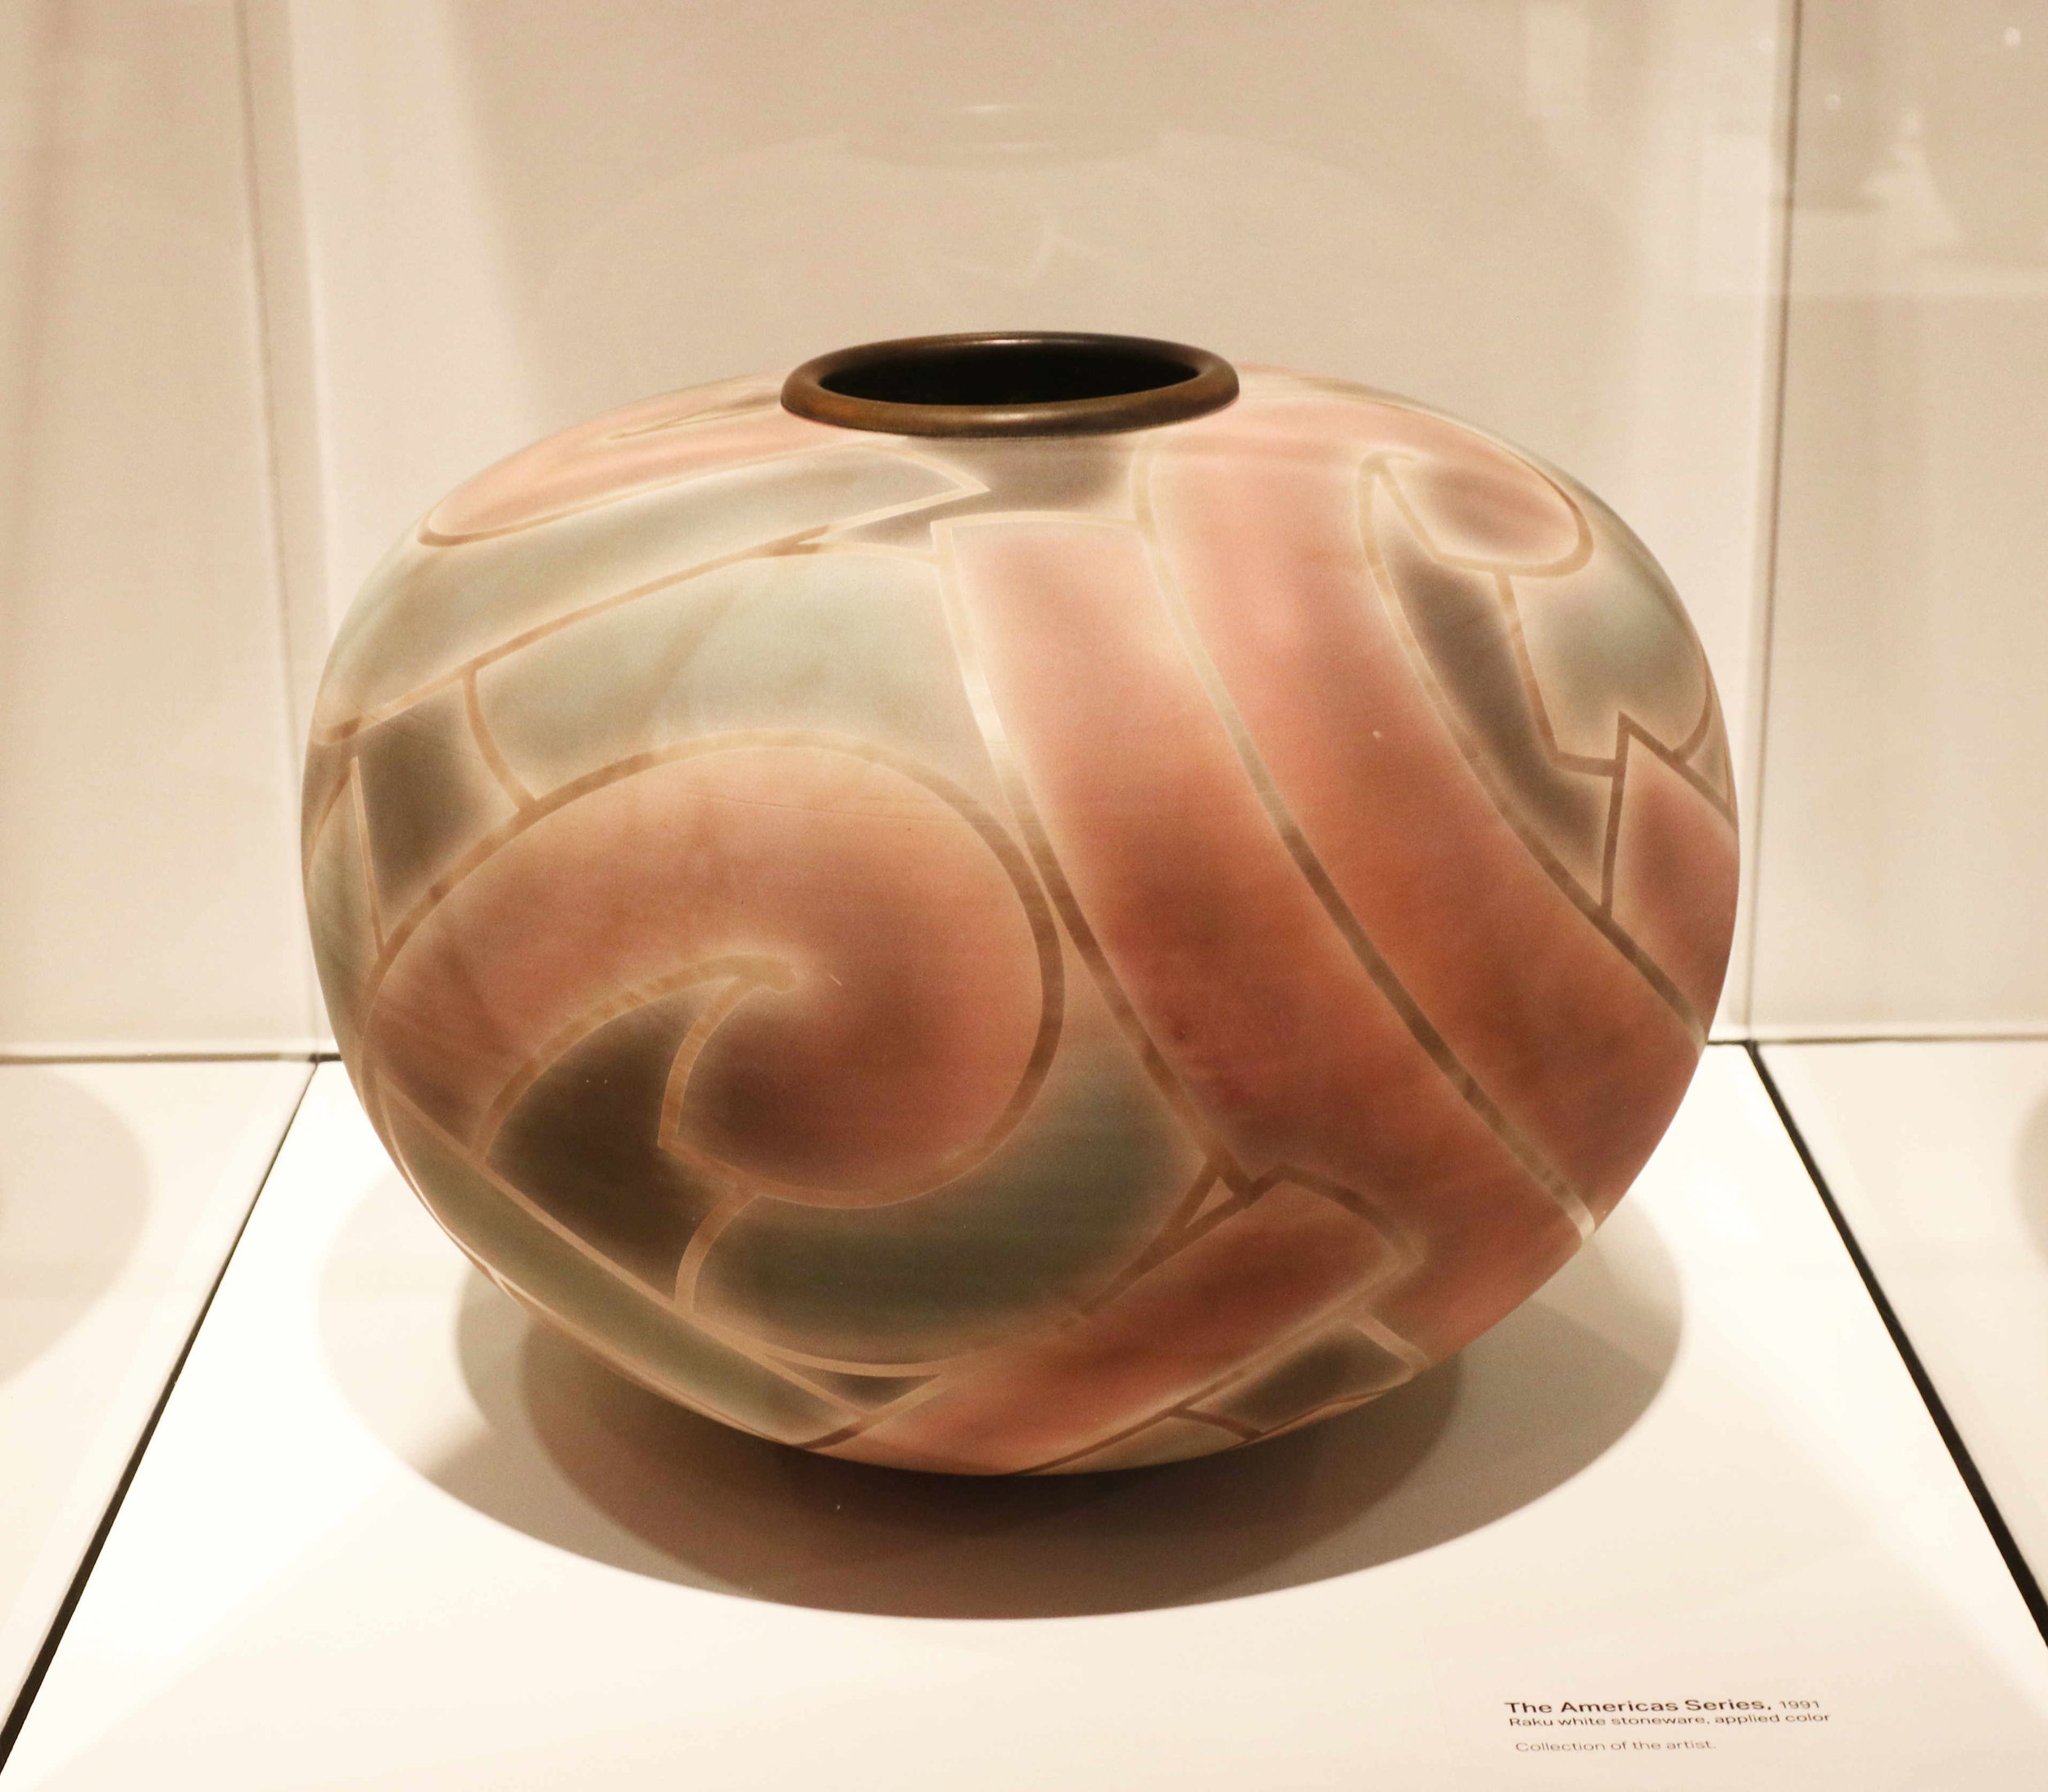 Michael Sherrill, The American Series, 1991. Raku white stoneware, applied color.